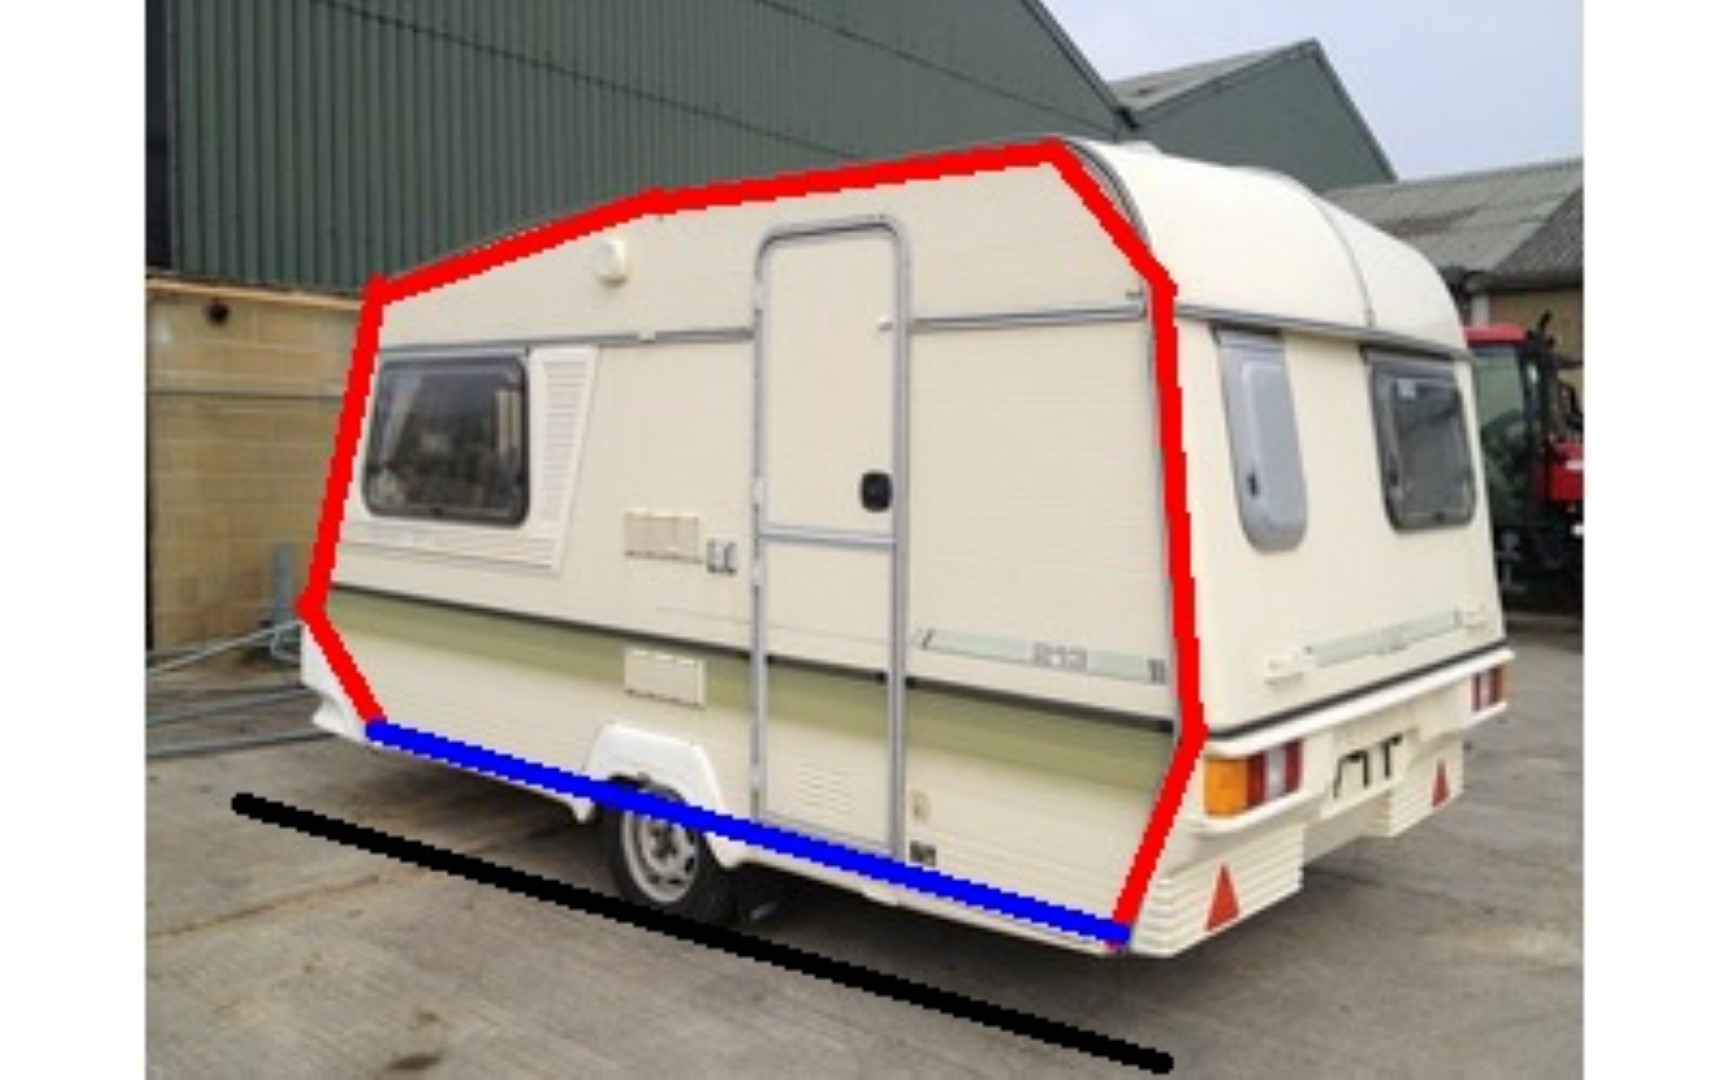 For sale: REDUCED Ticamo Calonge caravan awning, like new